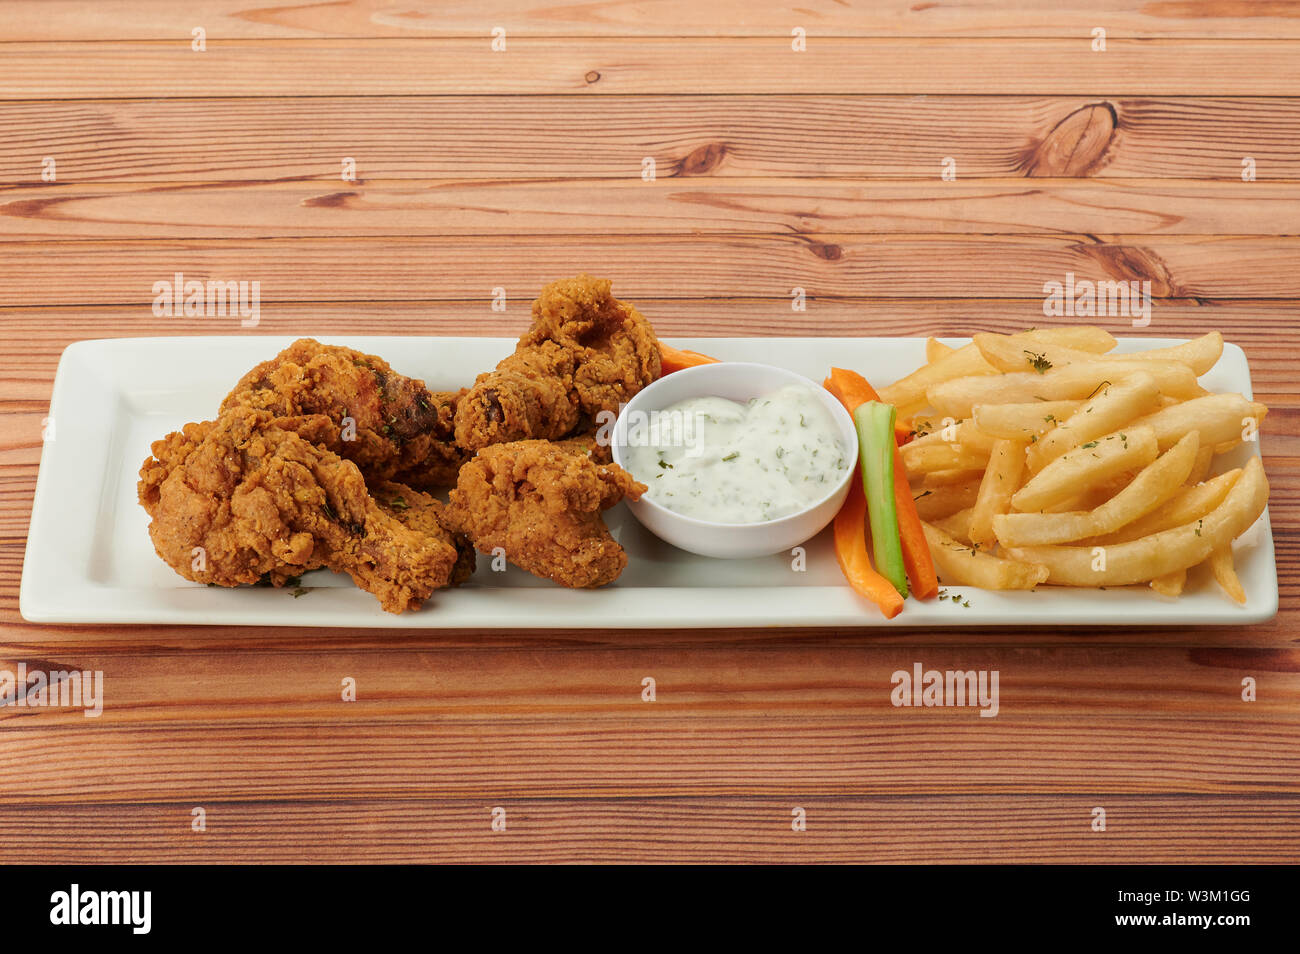 Fried chicken with tartar sauce in plate on wooden table - Stock Image